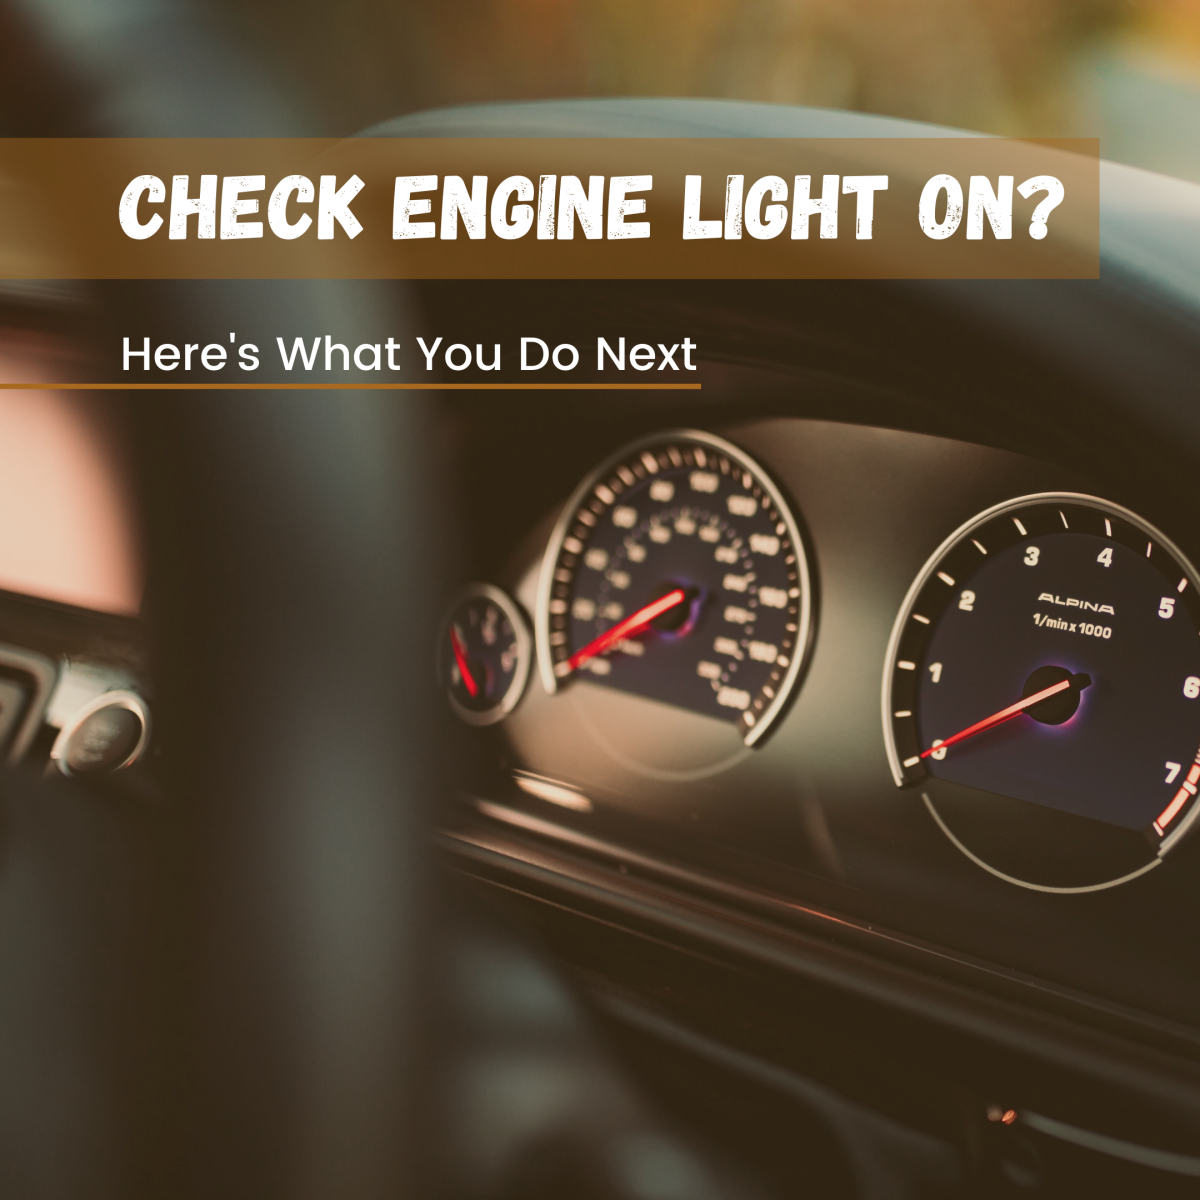 What should you do if your check engine light comes on?